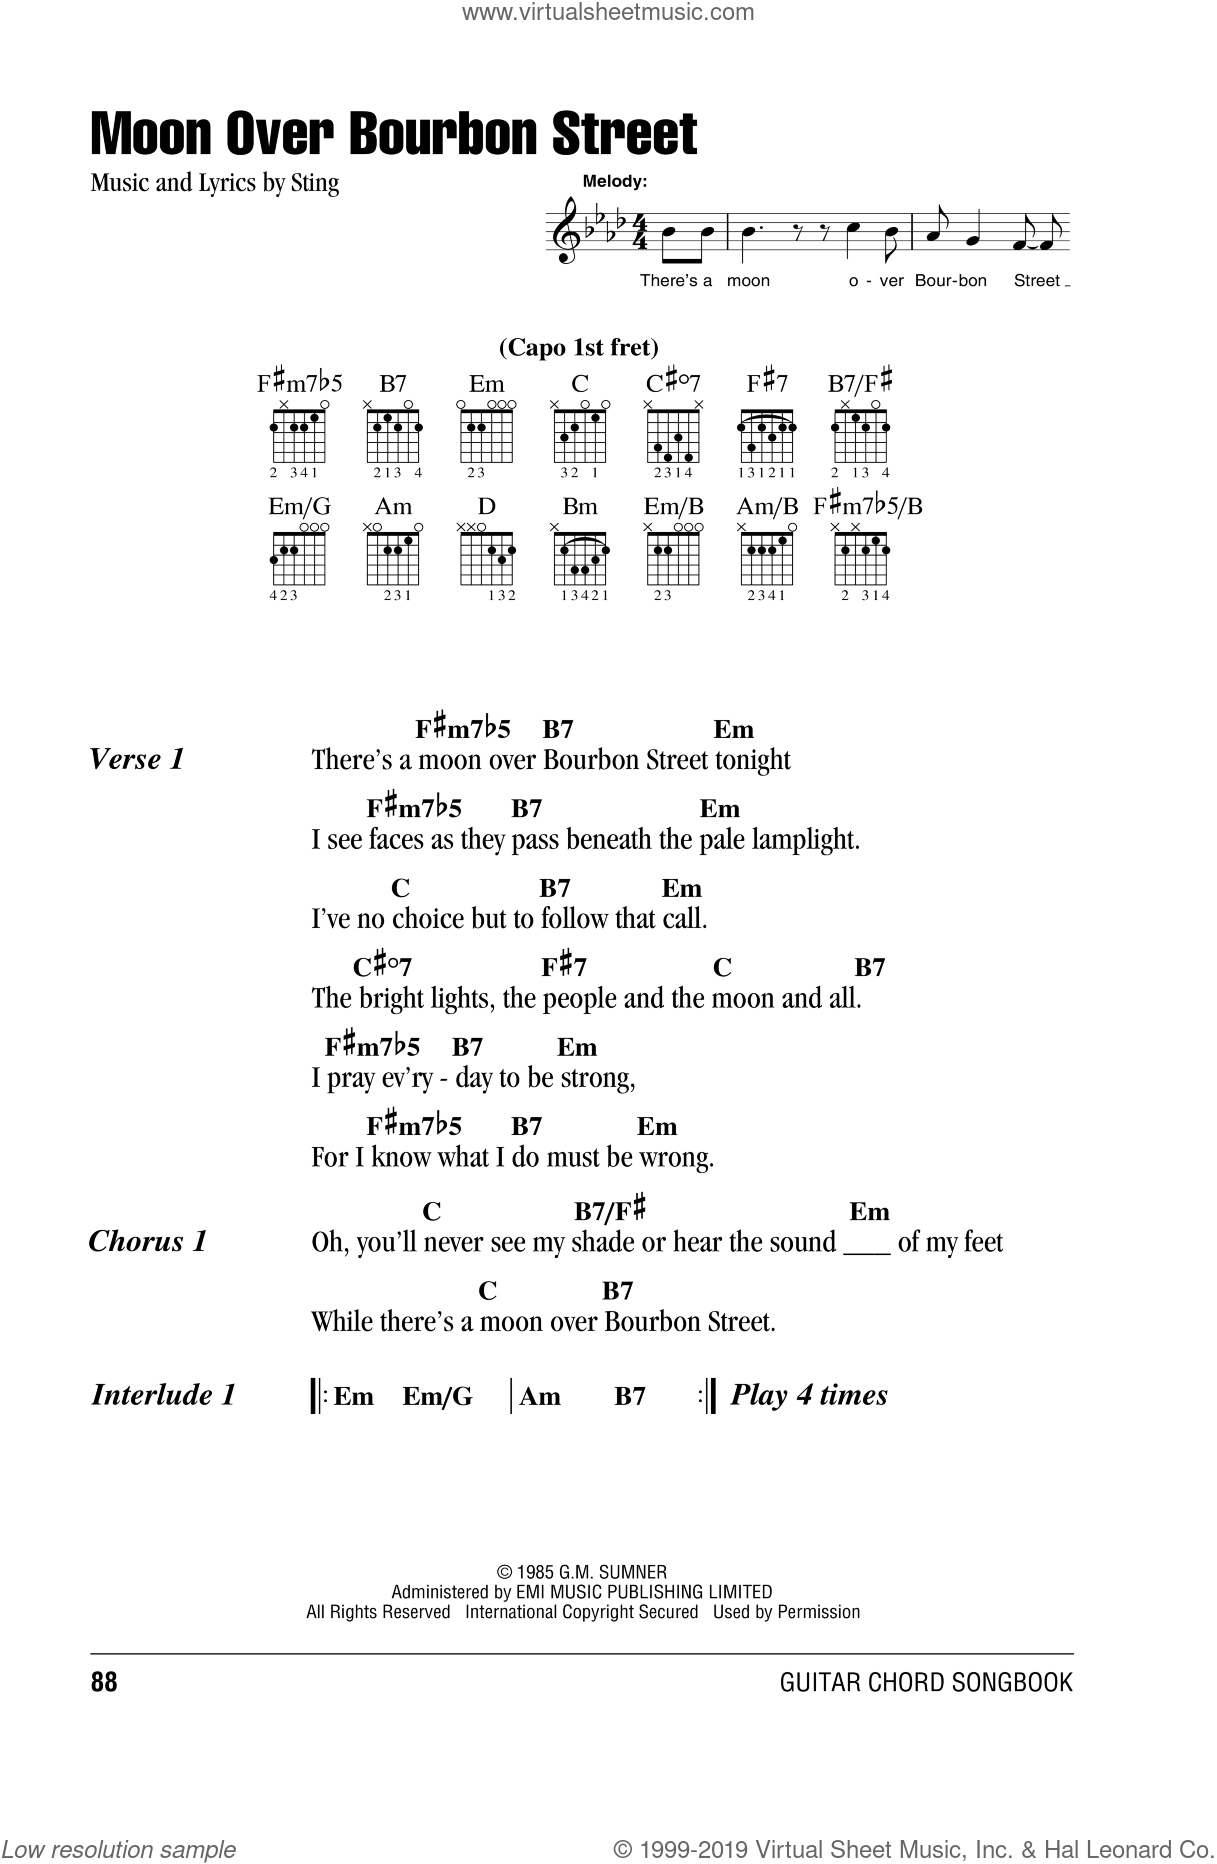 Moon Over Bourbon Street sheet music for guitar (chords) by Sting, intermediate skill level